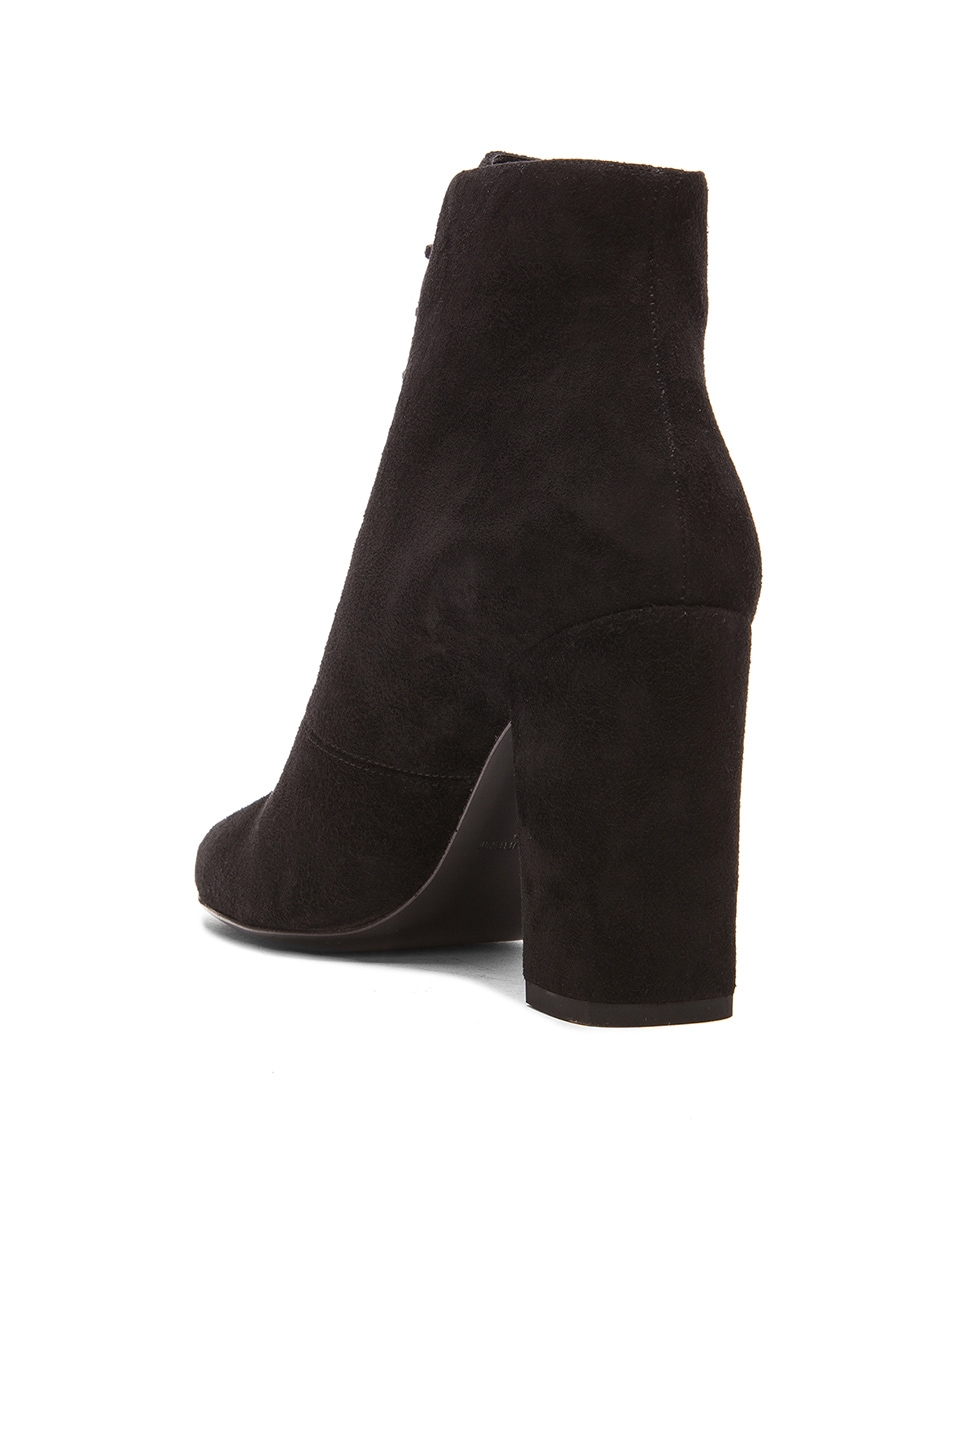 Image 3 of Saint Laurent Suede Lace Up Babies Boots in Black